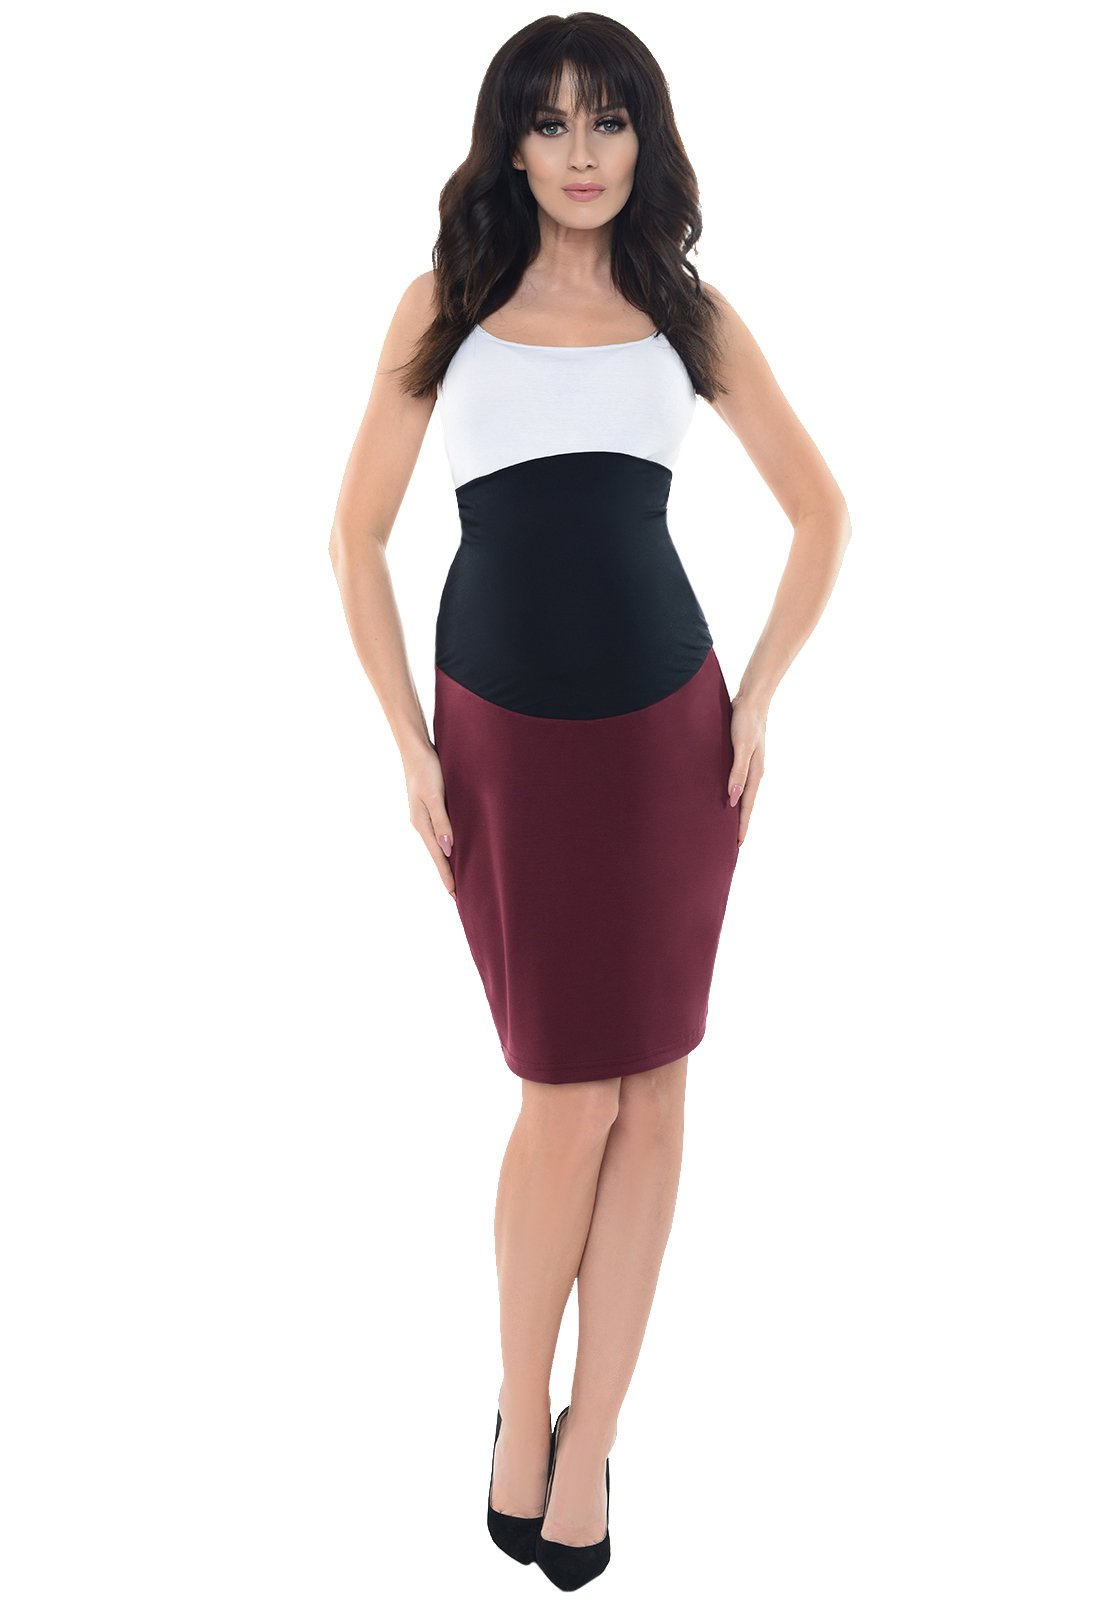 Purpless Maternity Pregnancy Formal Pencil Skirt 1504 (6, Burgundy)